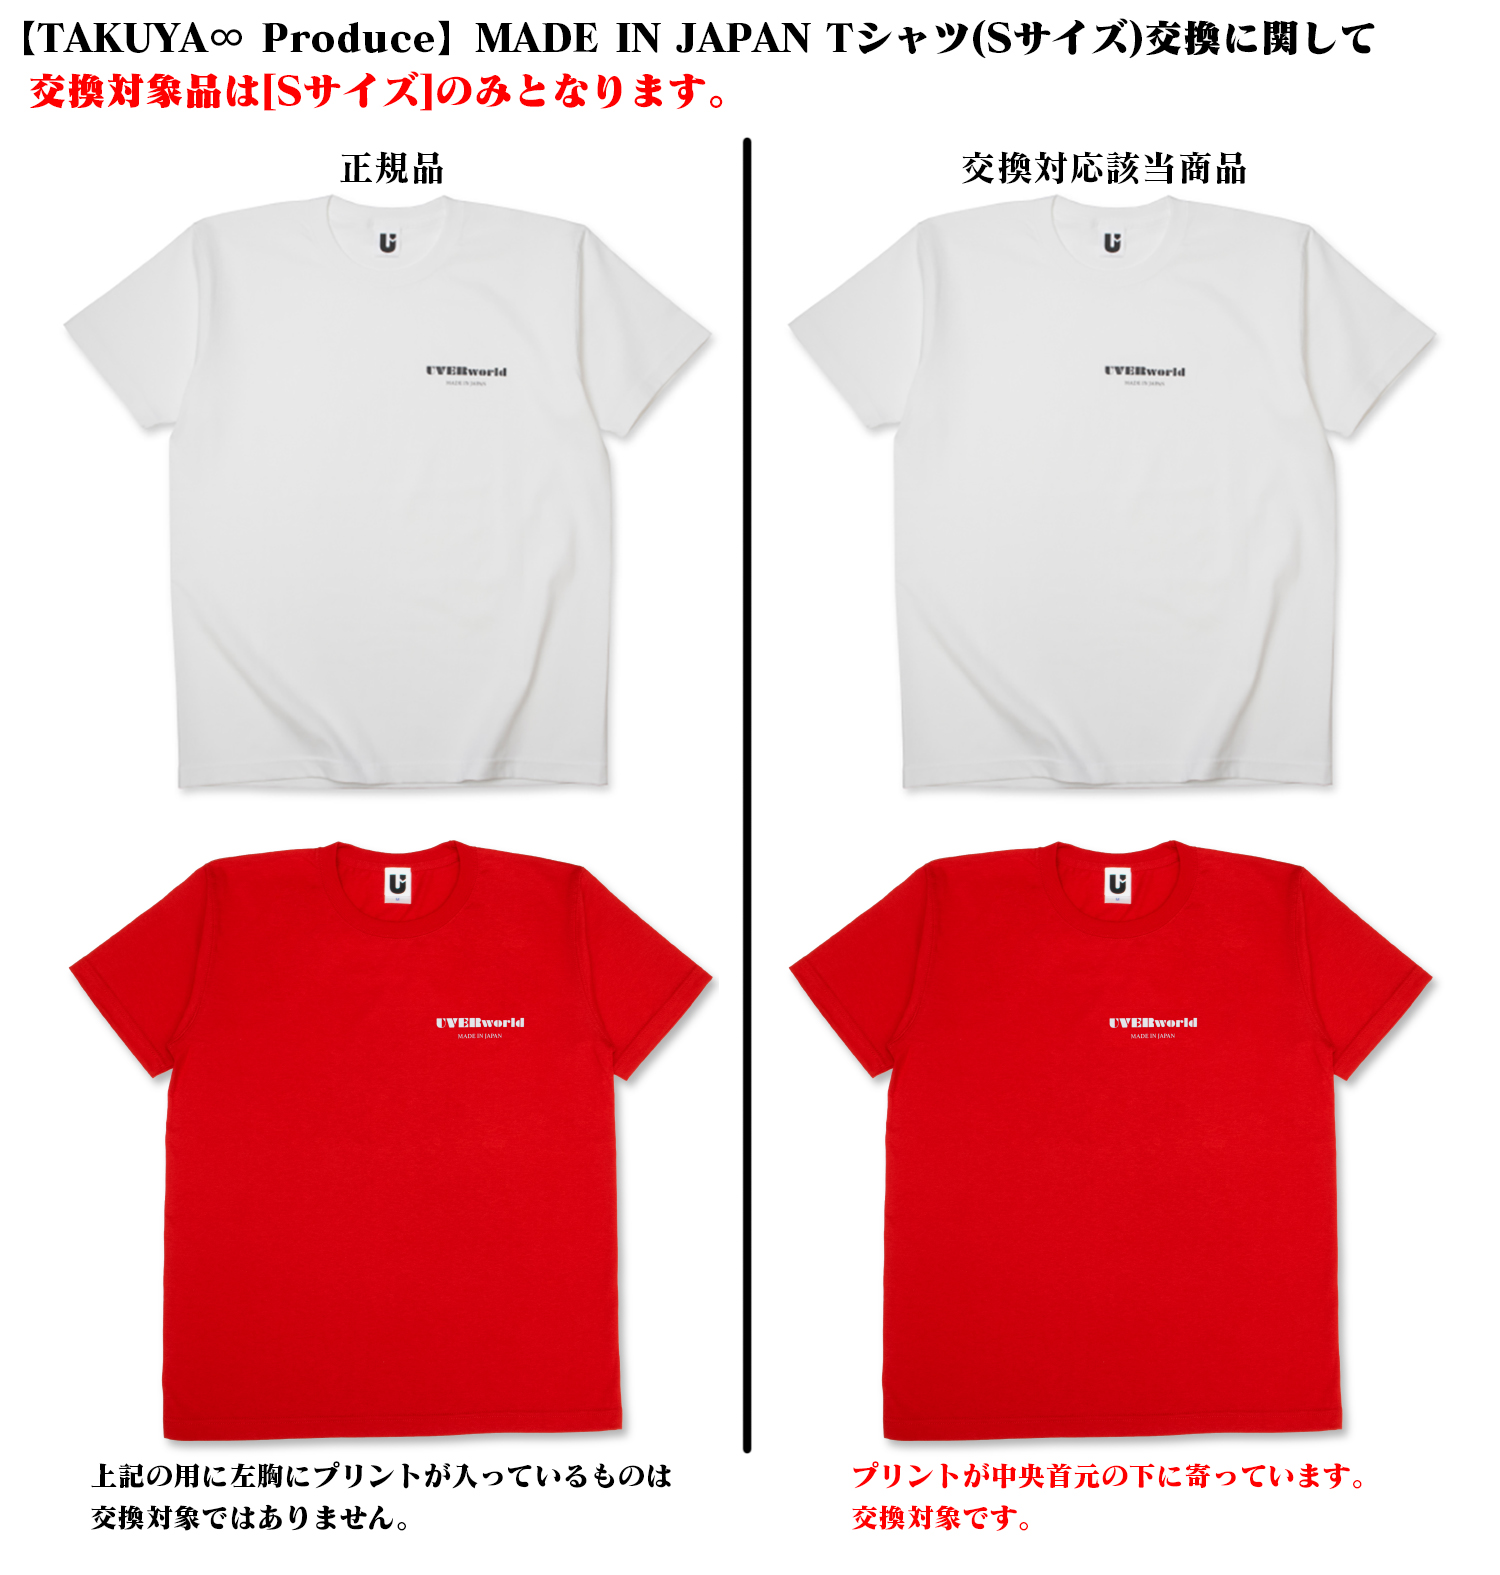 【TAKUYA∞ Produce】MADE IN JAPAN Tシャツ(Sサイズ)